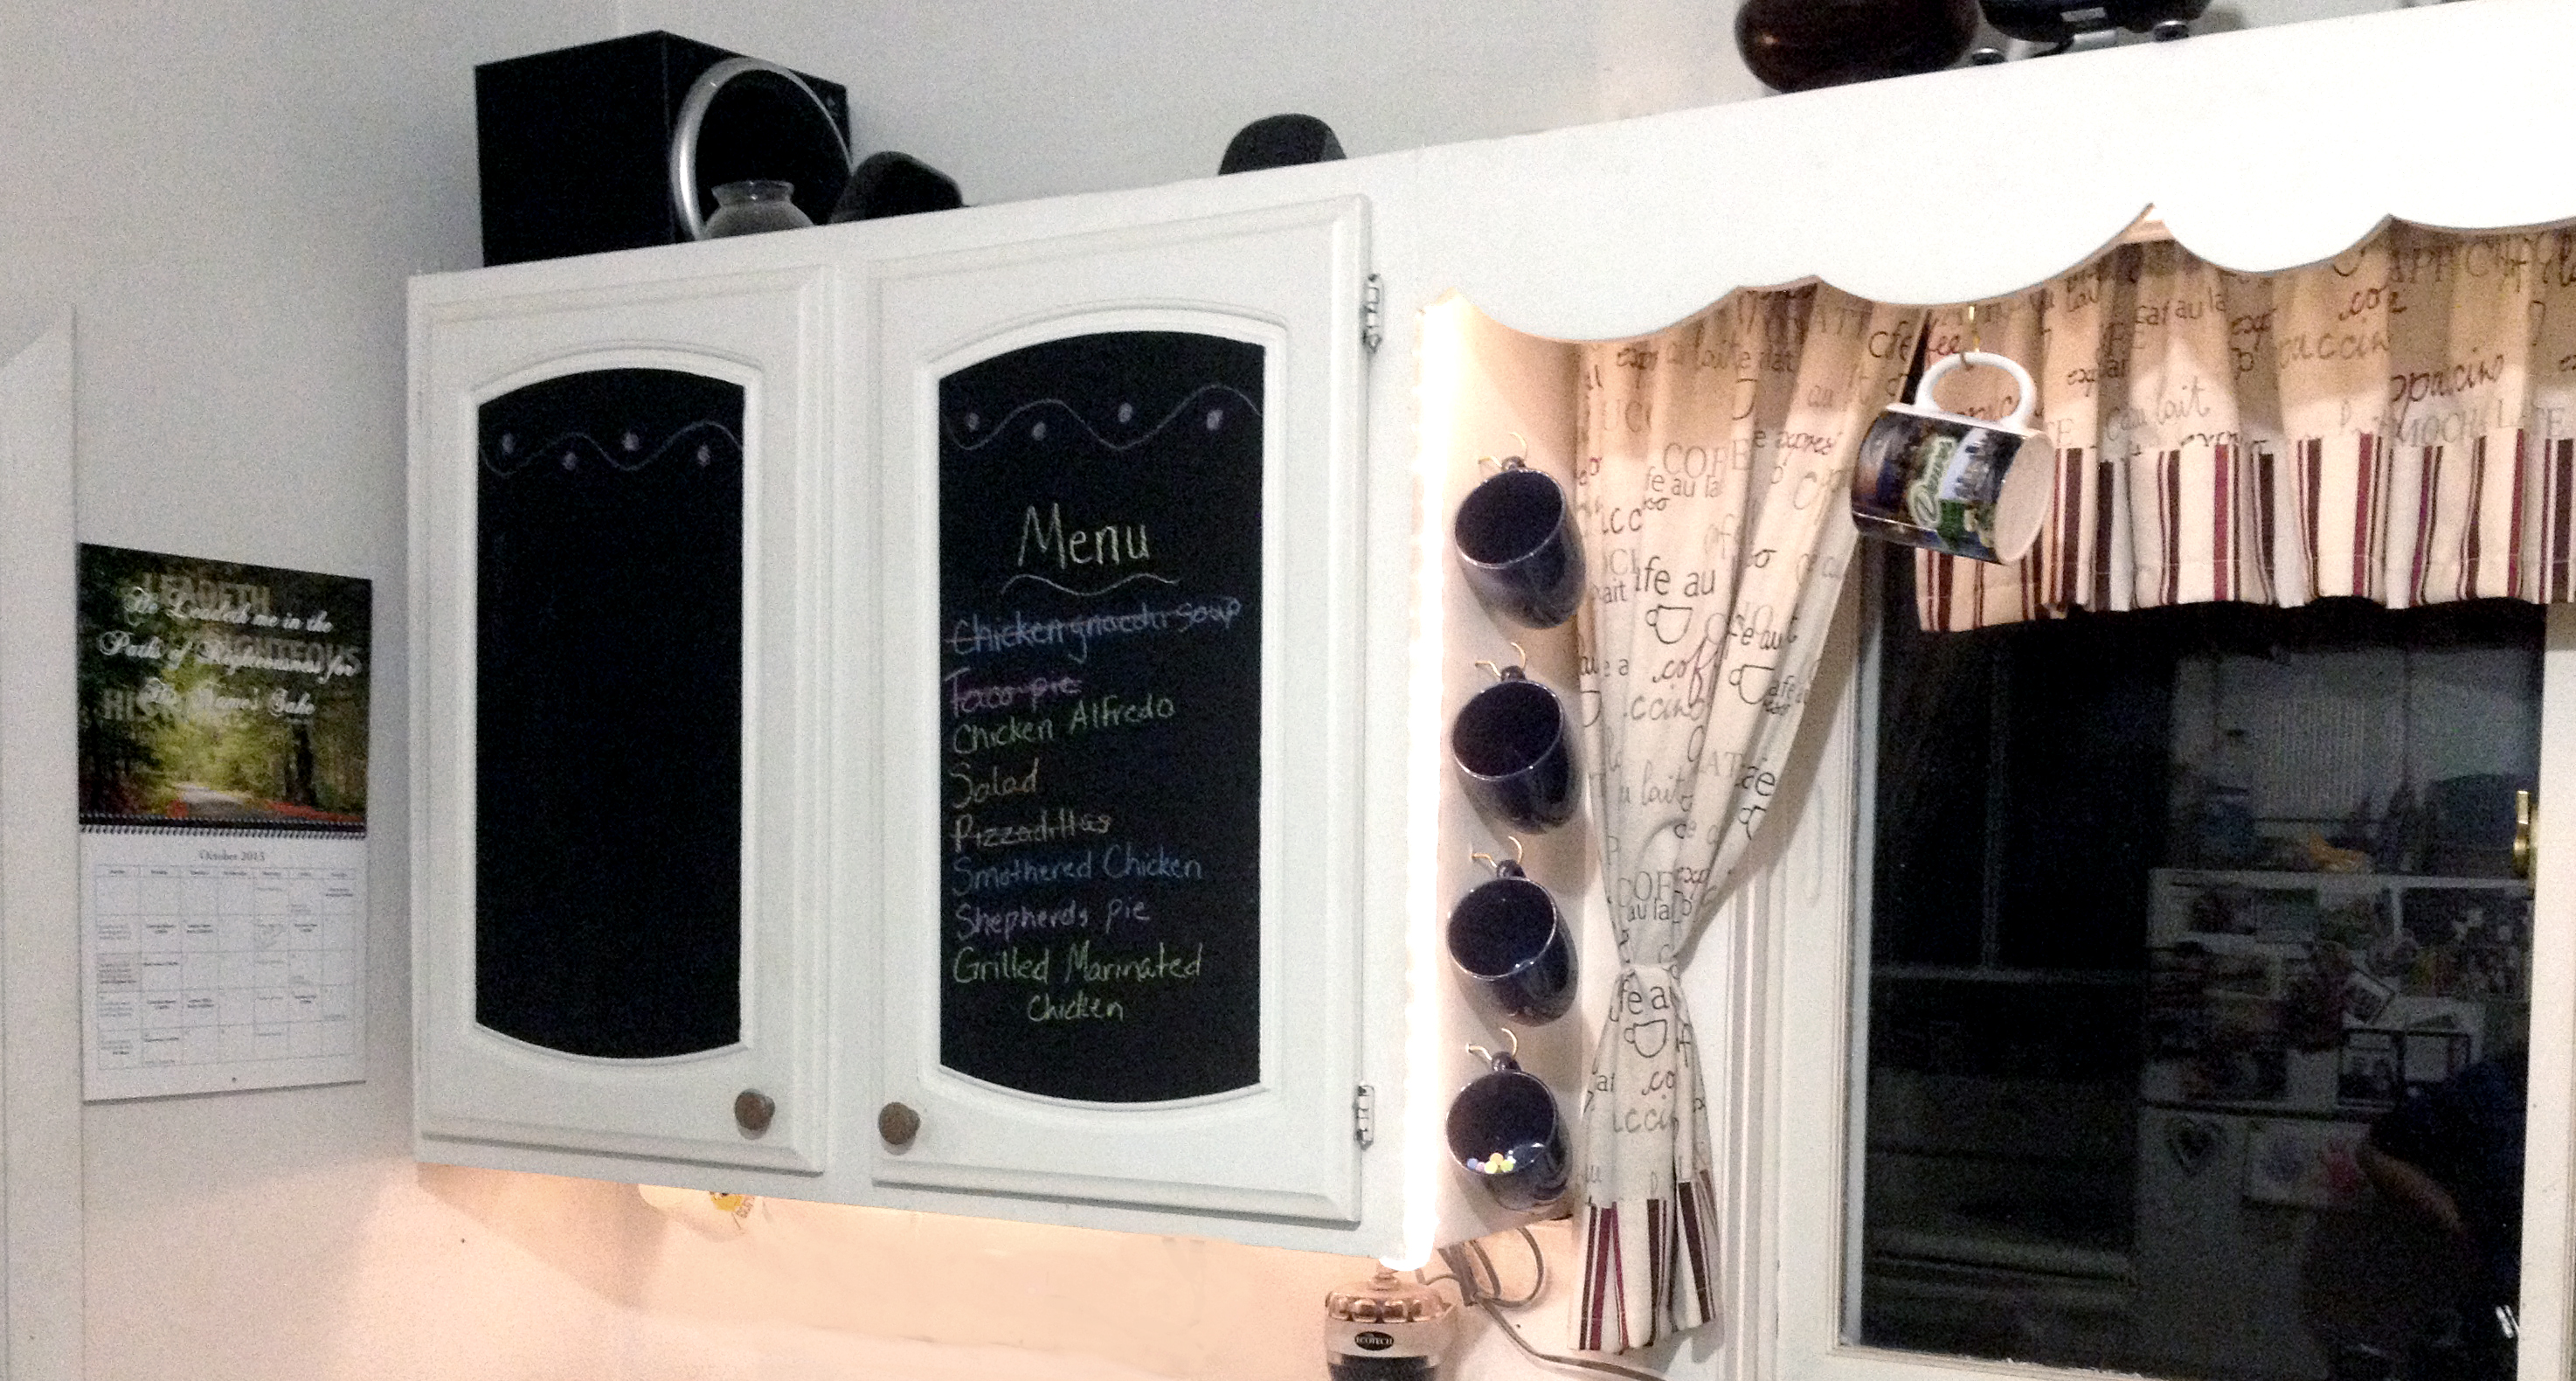 DIY Kitchen Cabinet Makeover Chalkboard Paint Love My DIY Home - Diy kitchen cabinets makeover